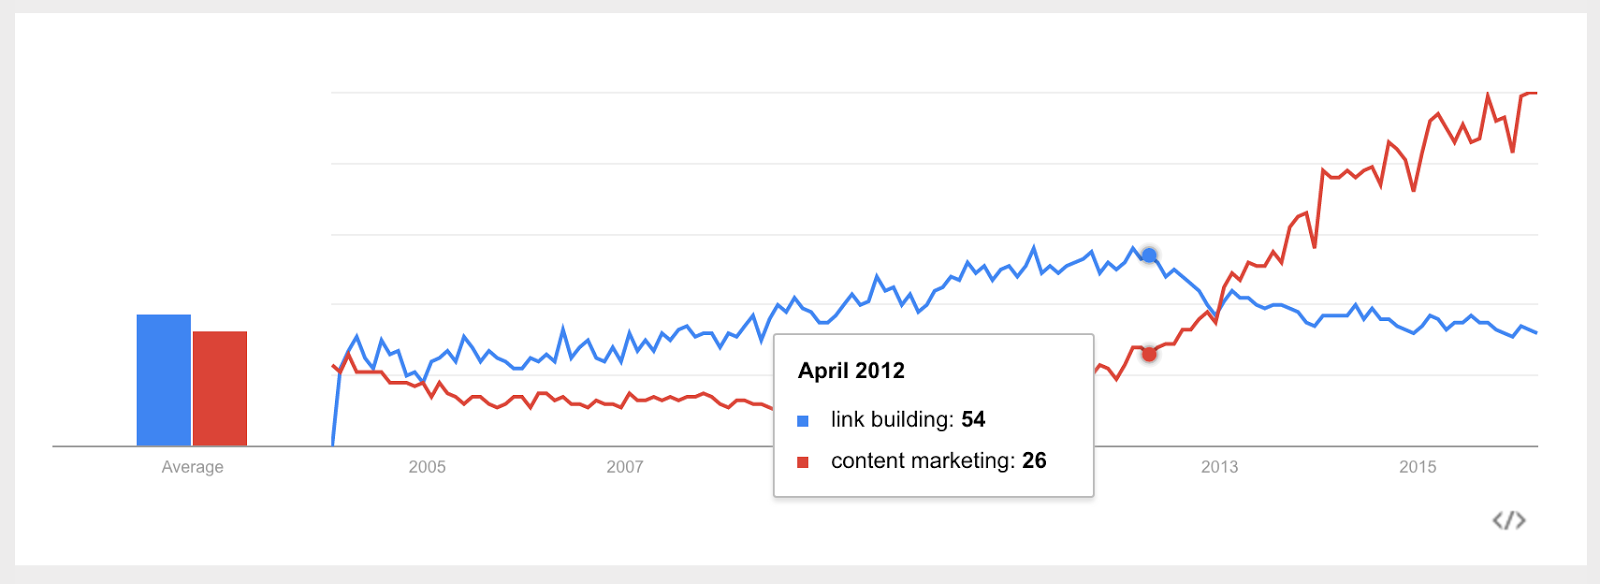 link building content marketing april 2012.png